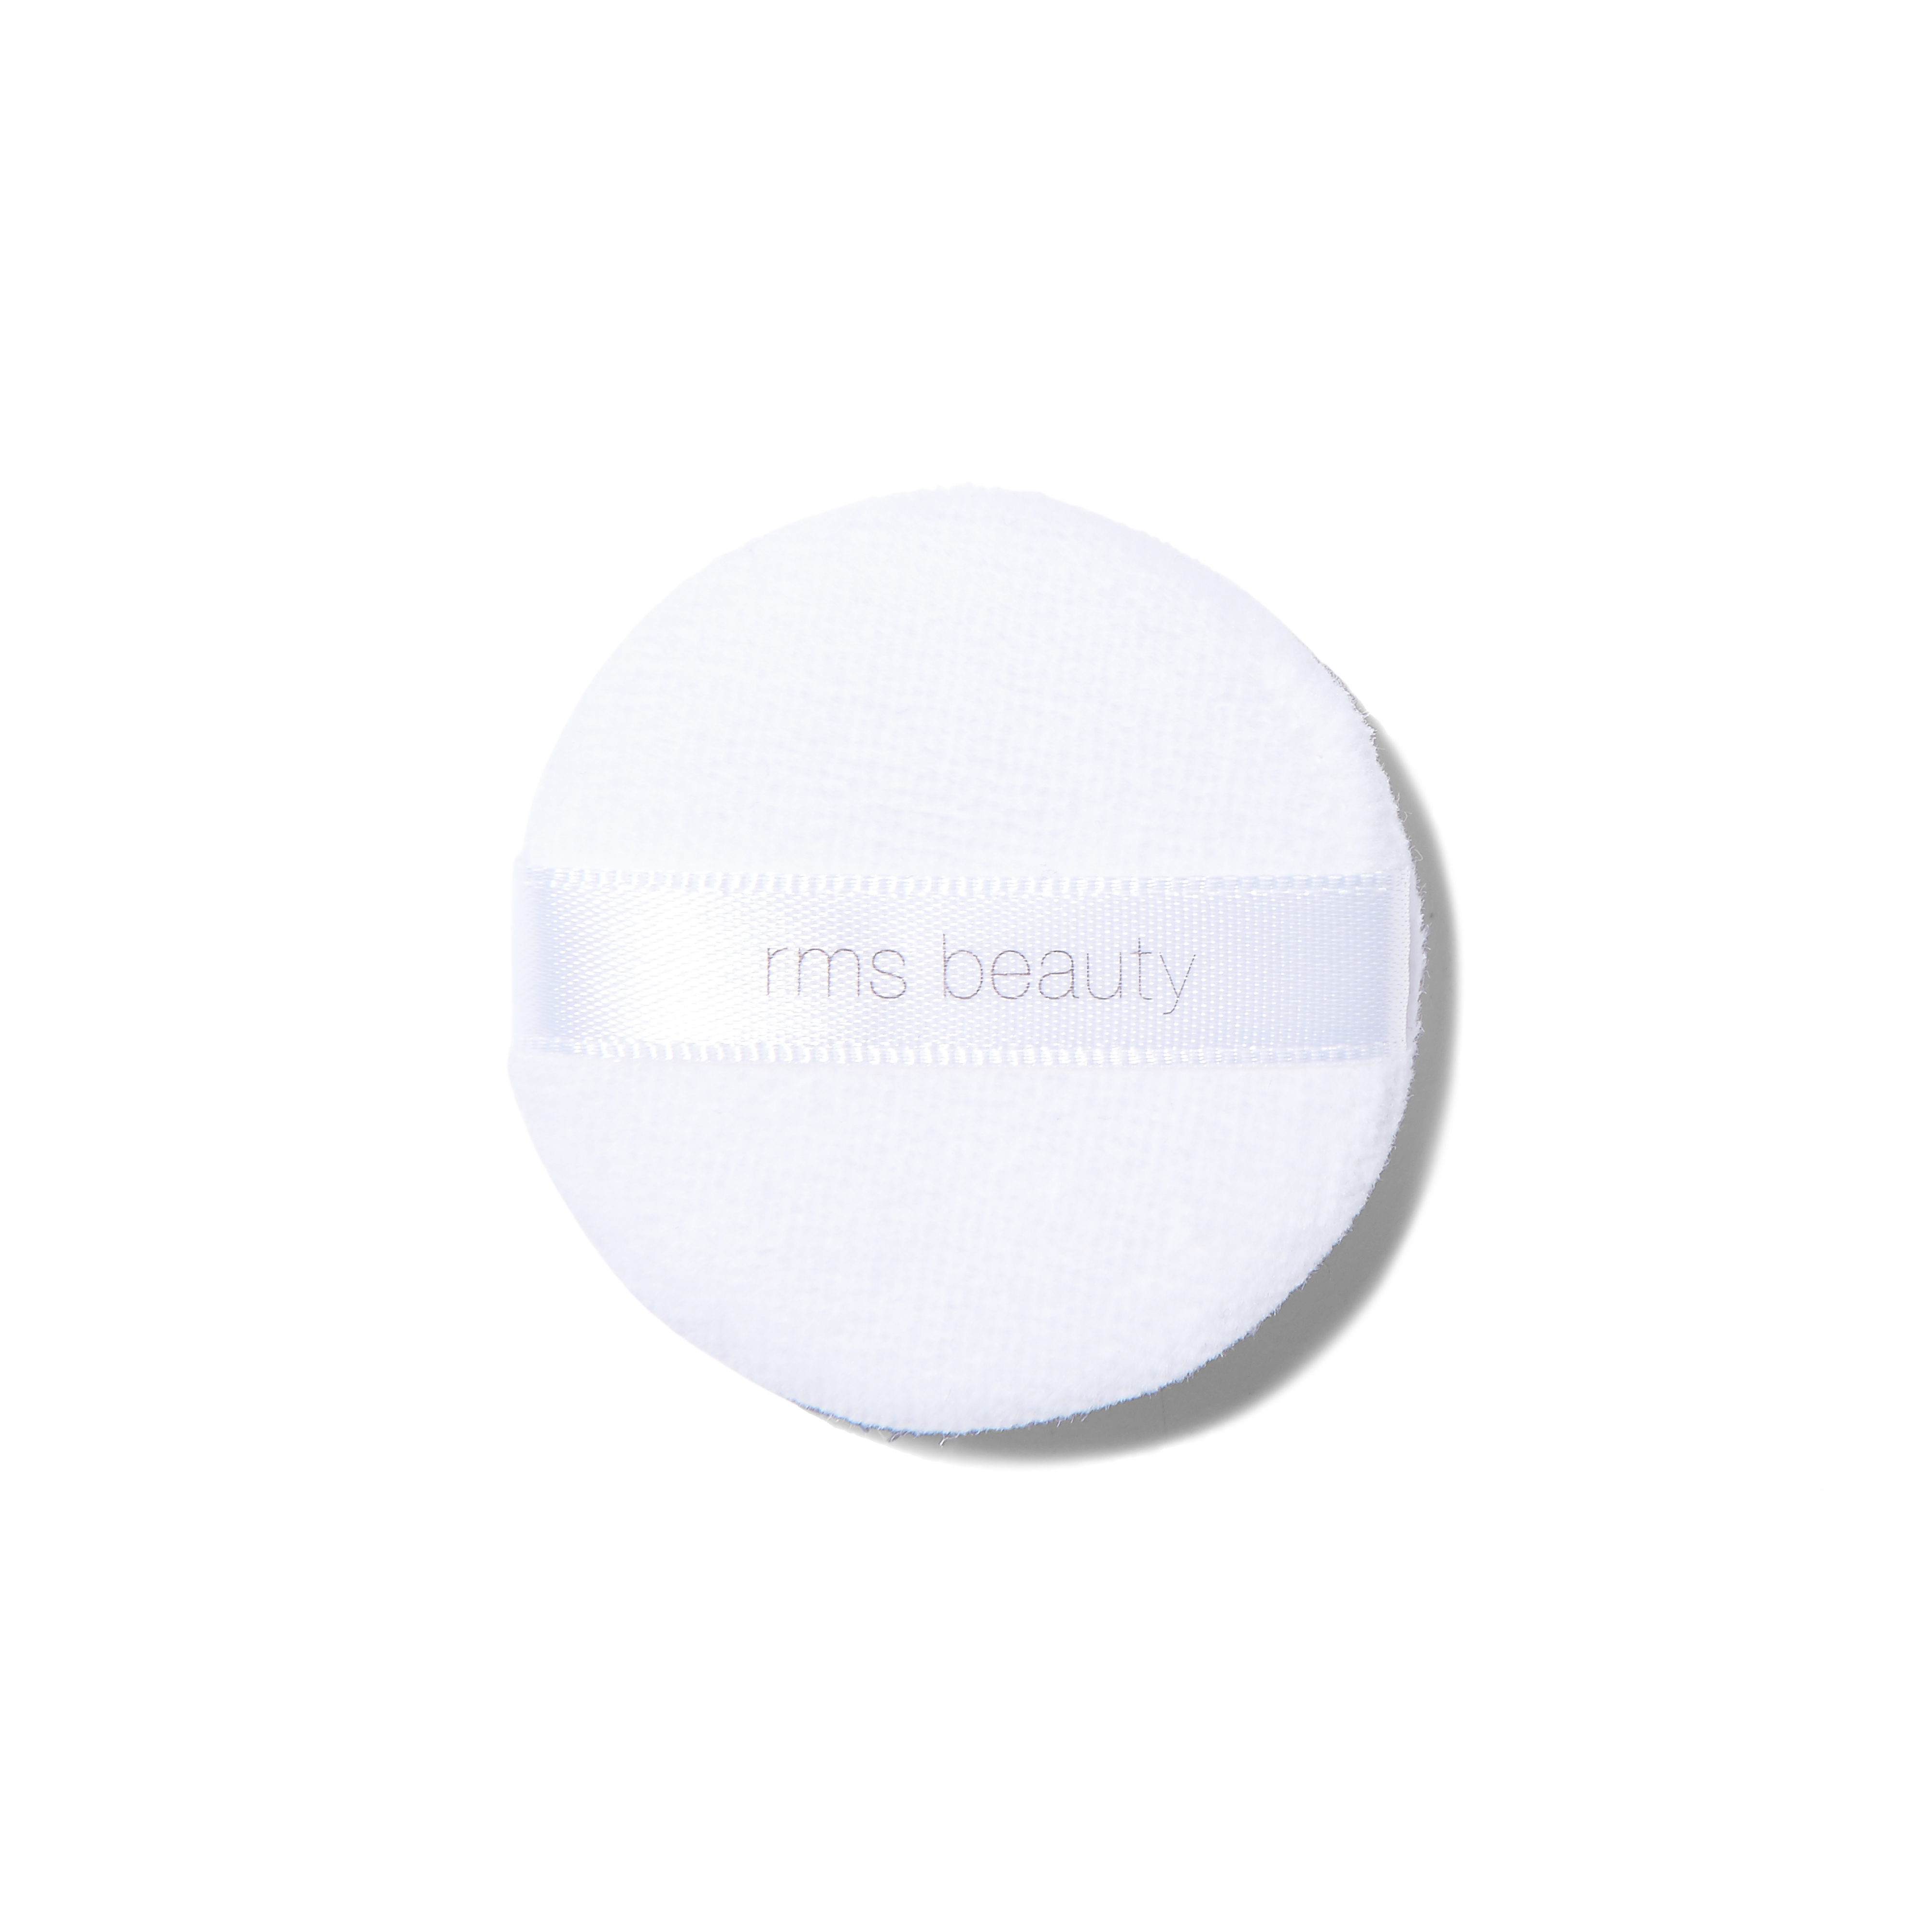 816248020010 - RMS Beauty Tinted